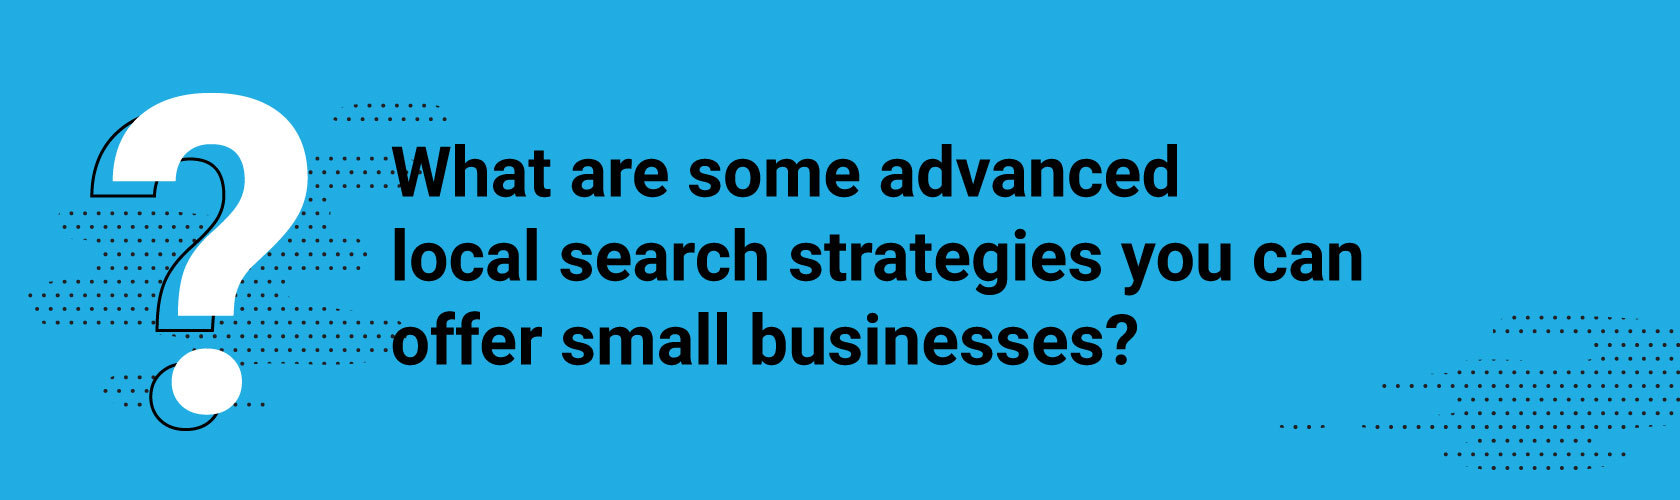 What are some advanced local search strategies you can offer small businesses?